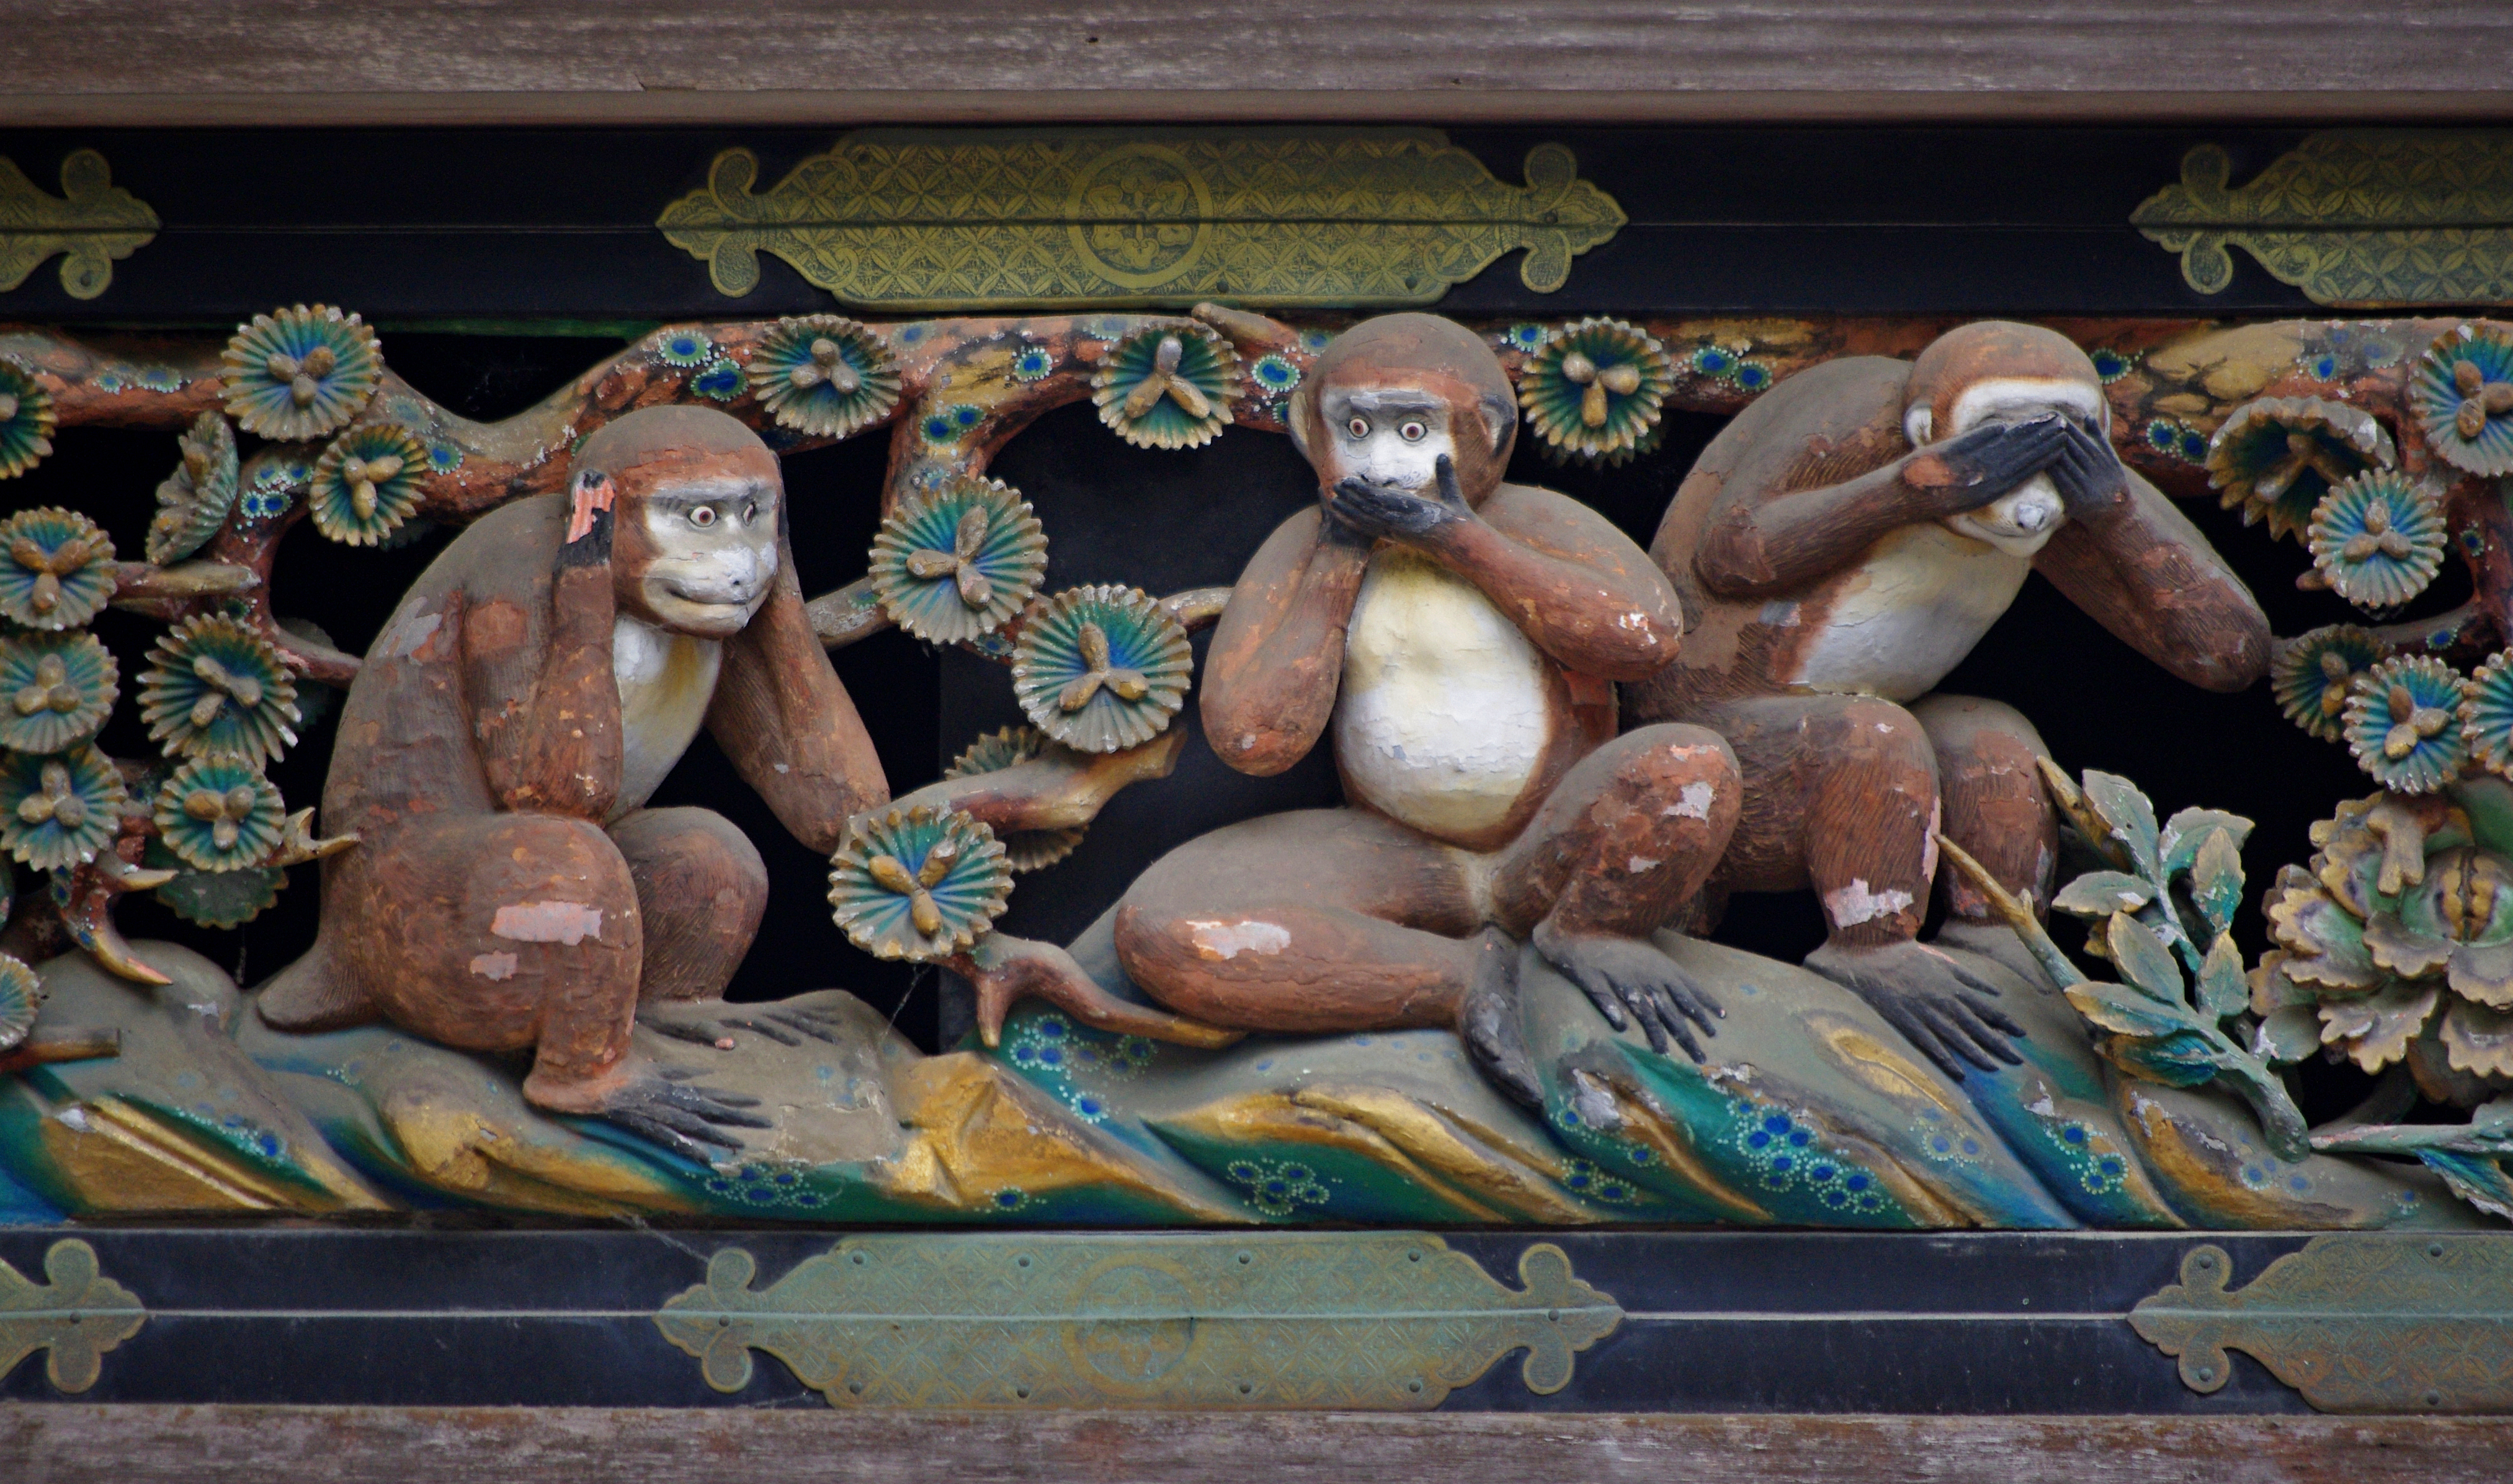 https://upload.wikimedia.org/wikipedia/commons/4/41/20100727_Nikko_Tosho-gu_Three_wise_monkeys_5965.jpg